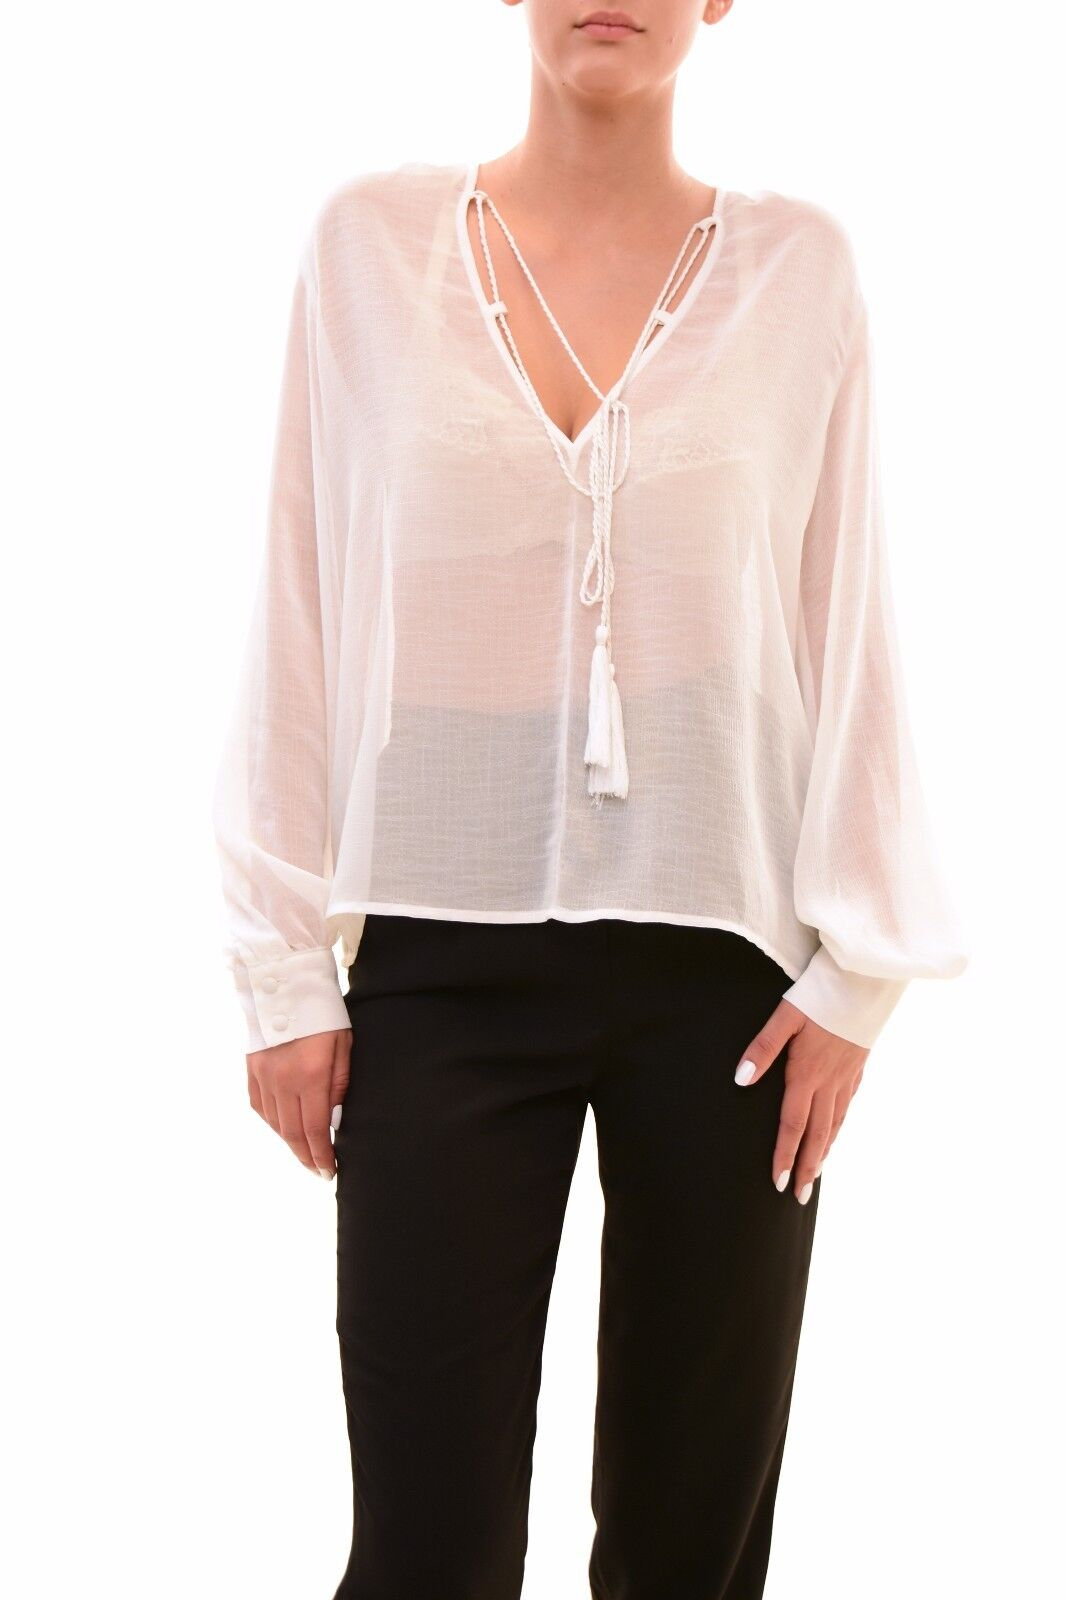 Finders Keepers Women's Authentic Marconi Top Cloud White Size S RRP  BCF710